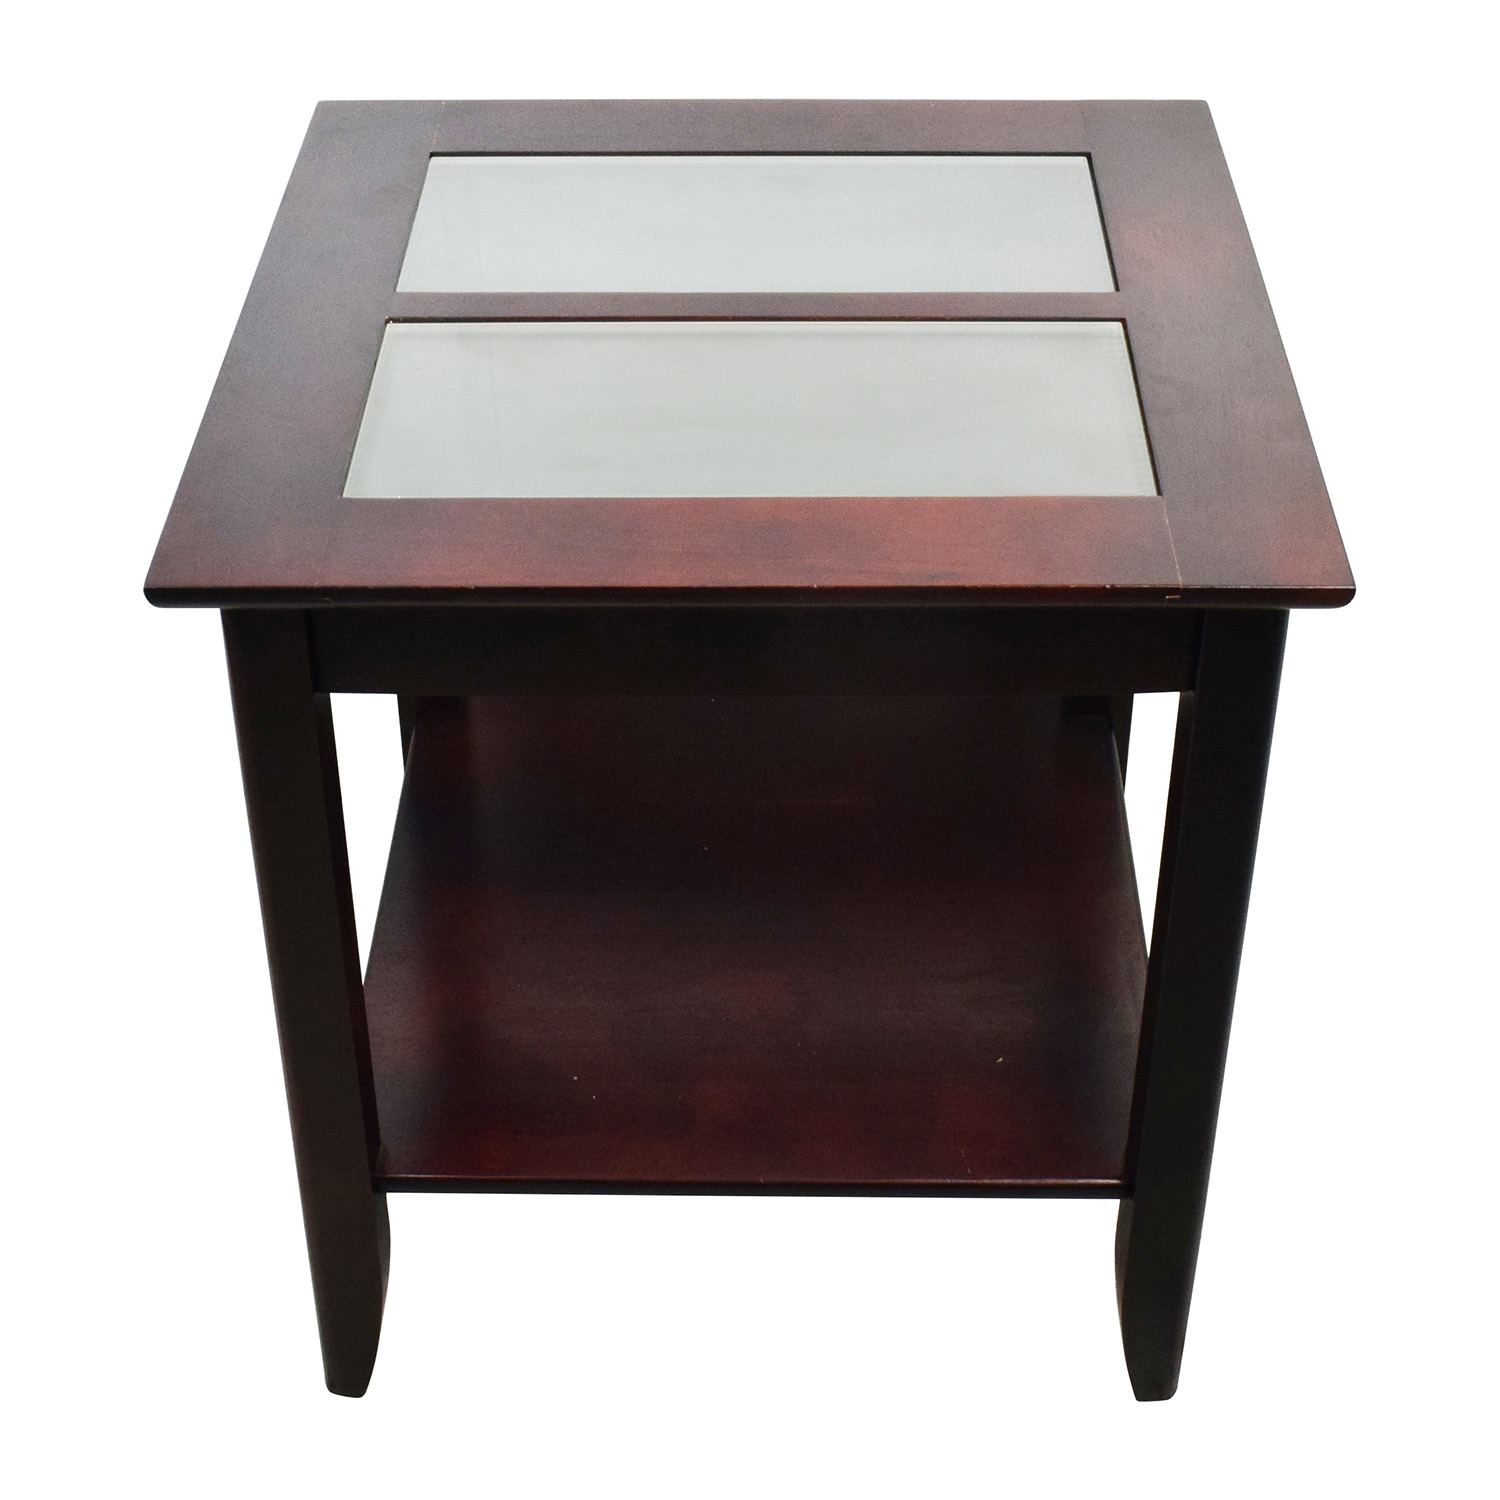 85 off target target glass and wood coffee table tables